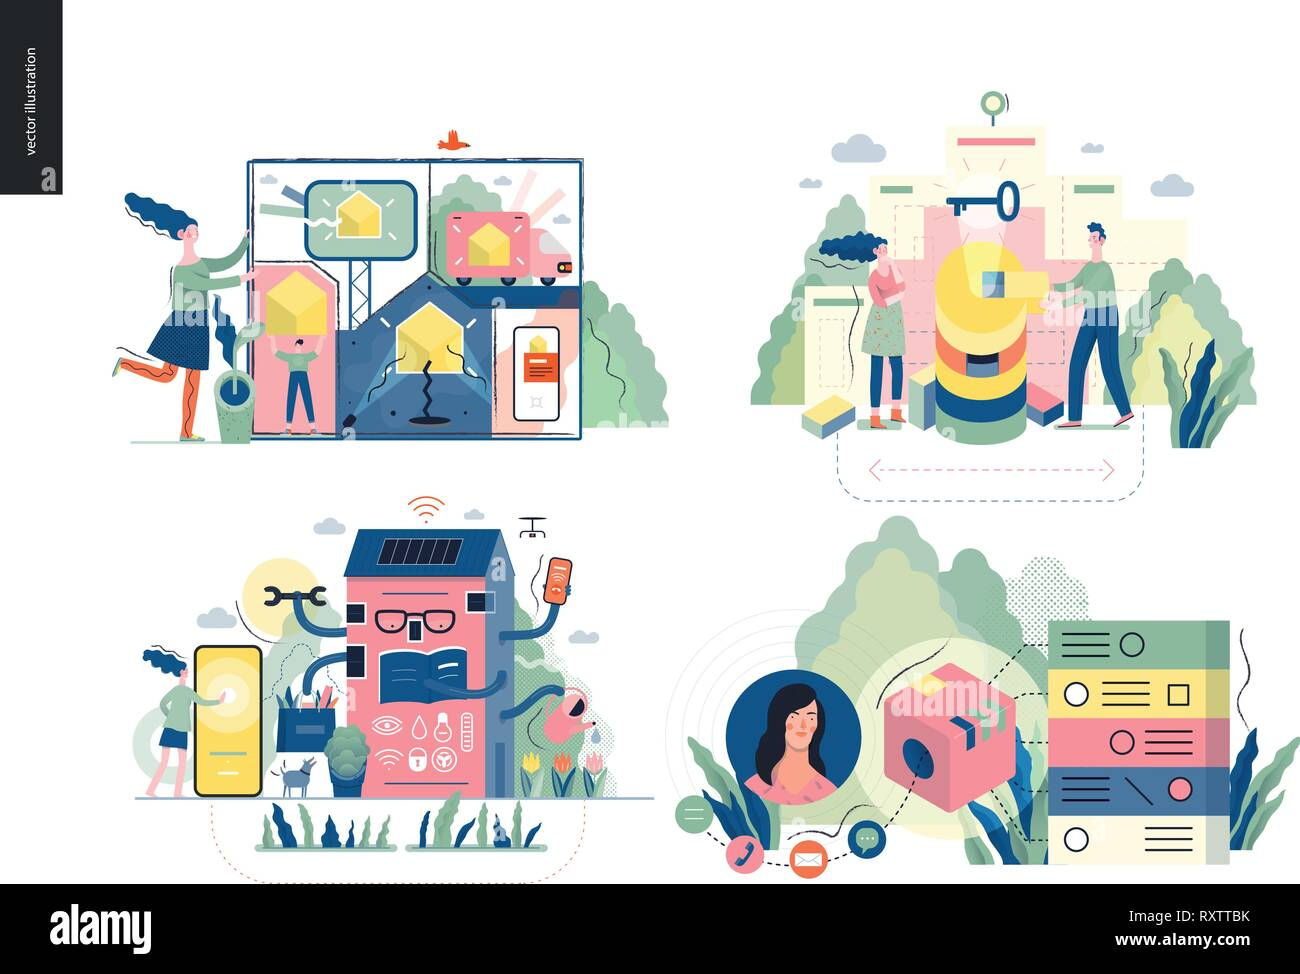 Technology 1 set - modern flat vector concept digital illustration- Marketing Promotion, Solution, Intelligent building, CRM Customer Relationship Man - Stock Image